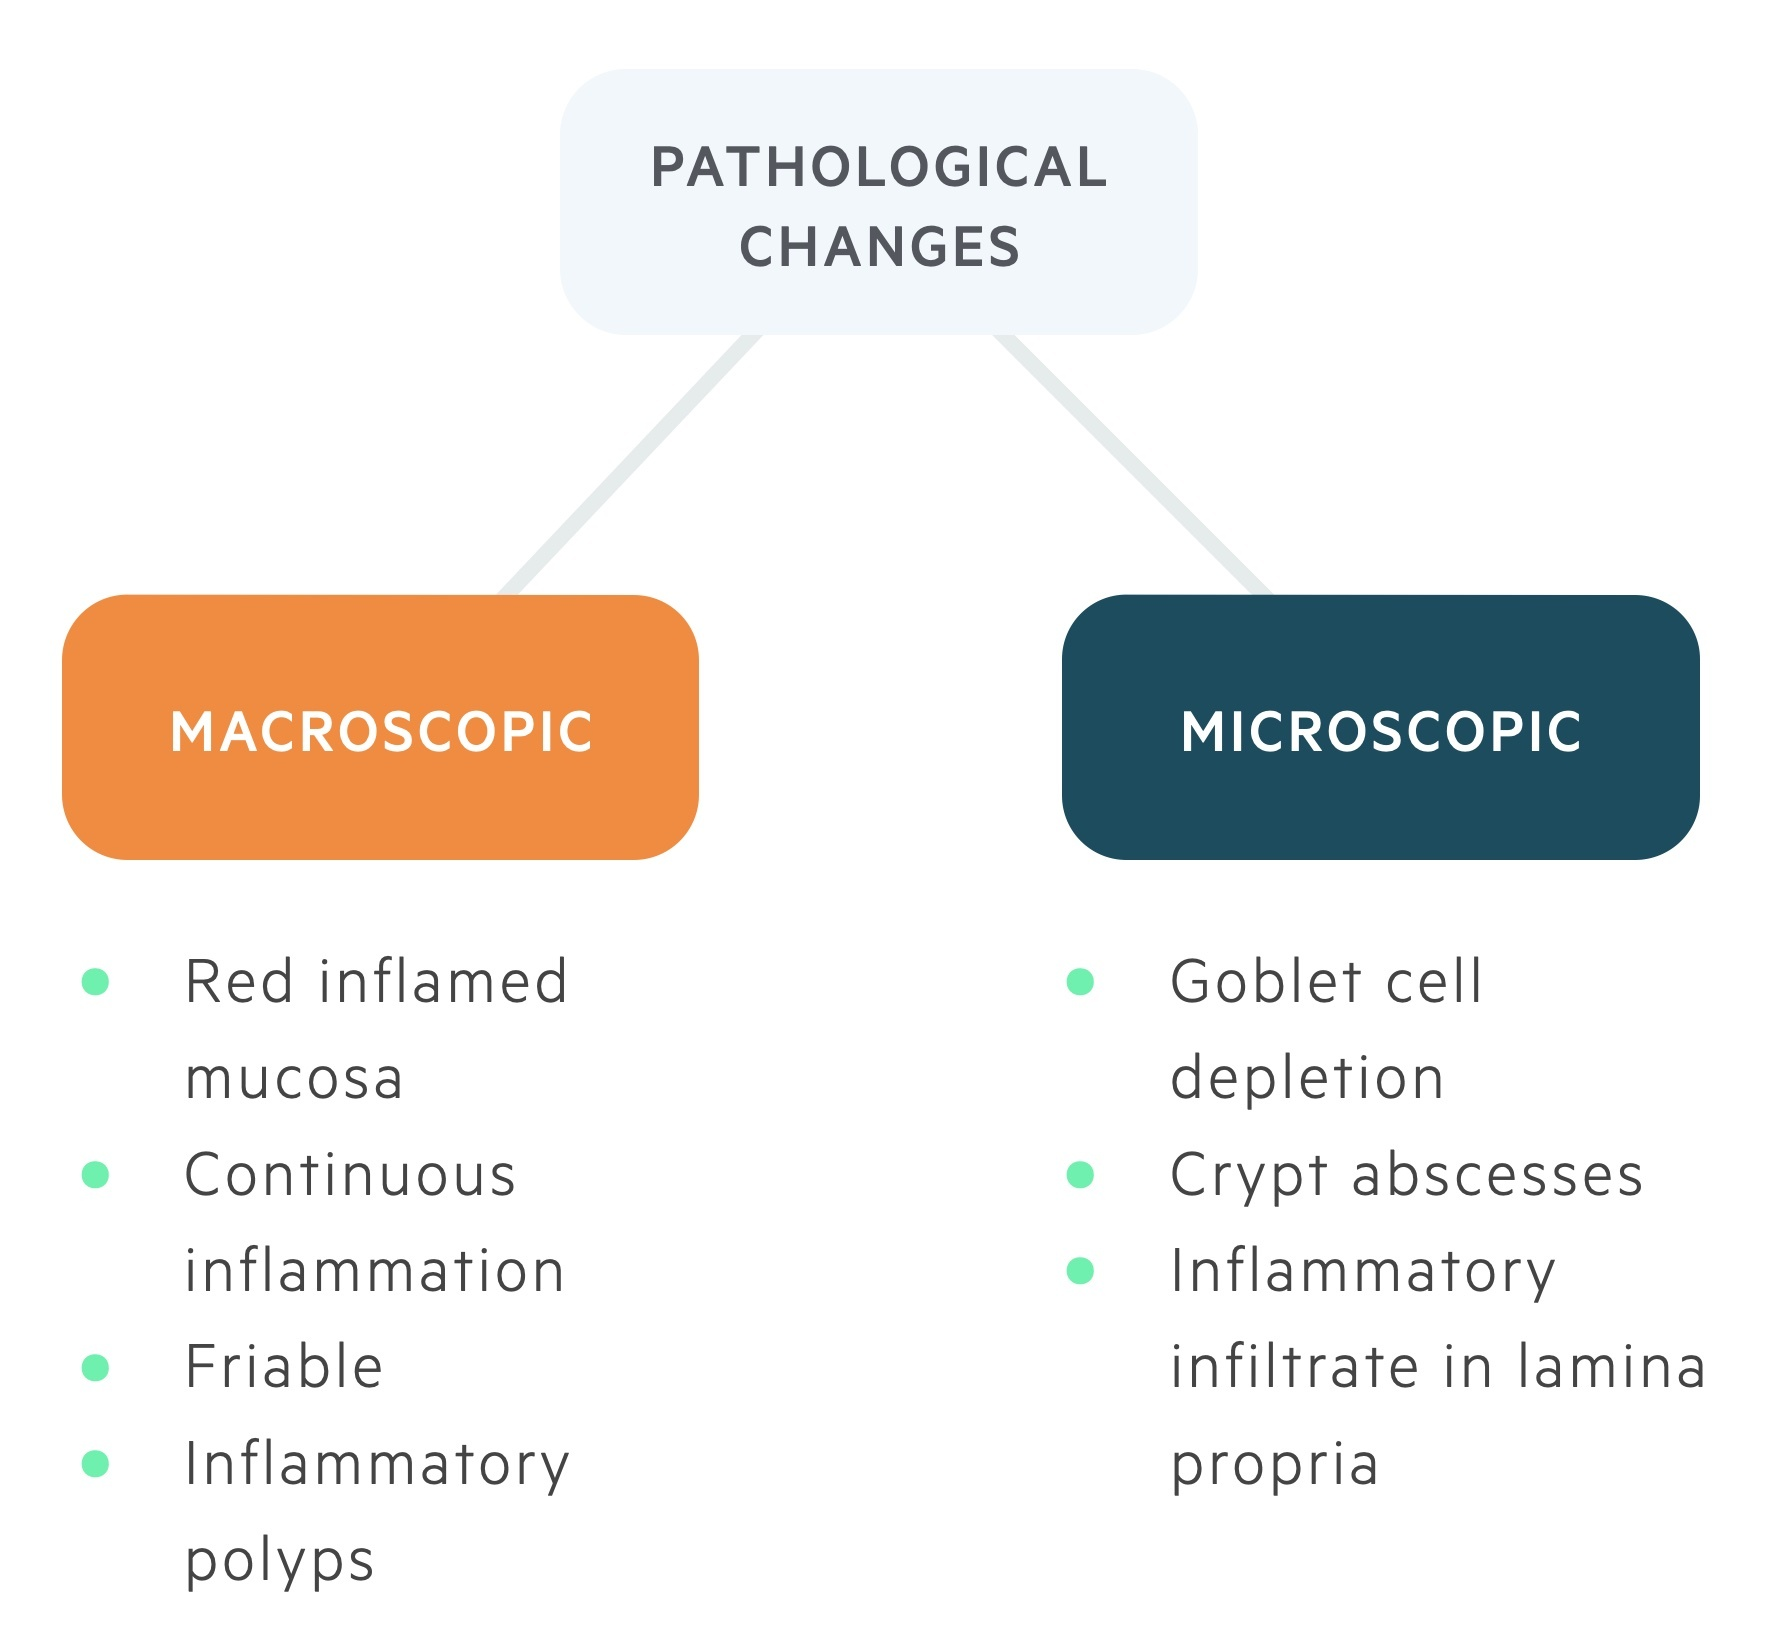 Macroscopic and microscopic changes in UC